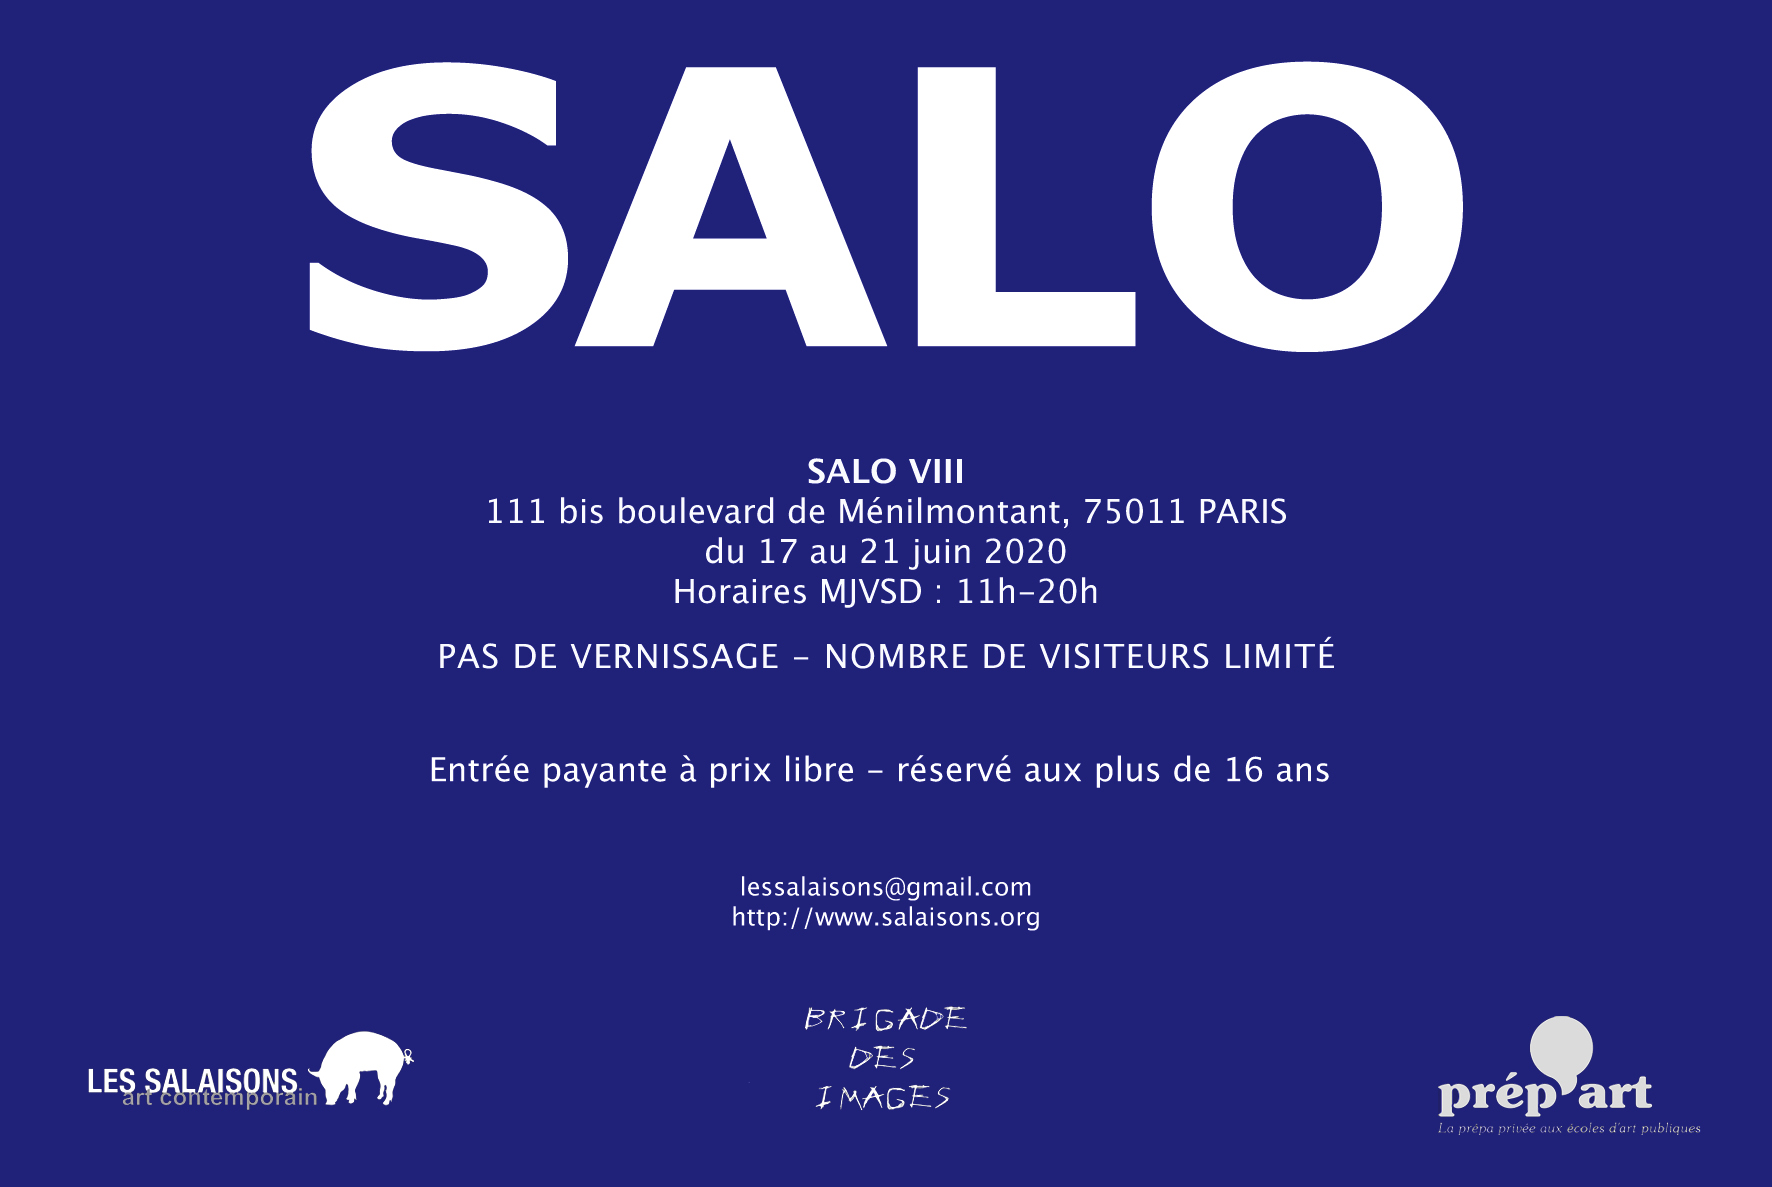 Salo VIII -Salon du dessin érotique